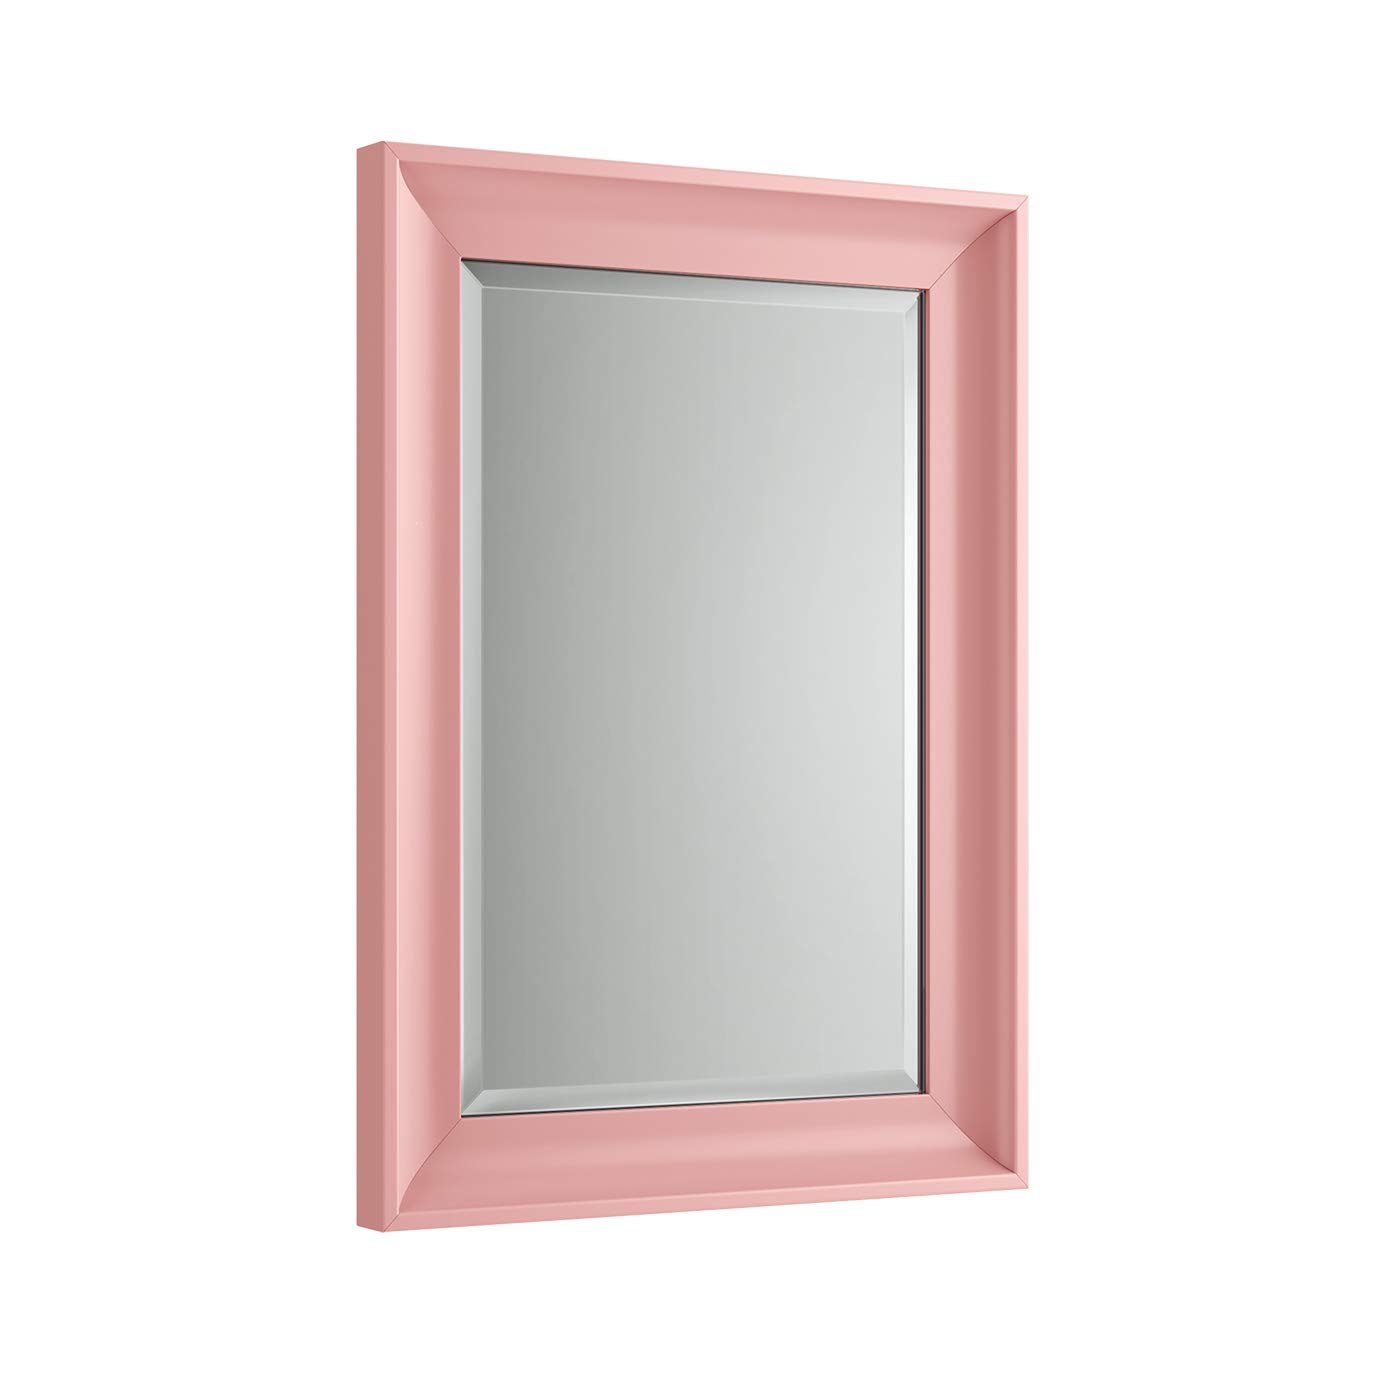 Traditional Lilac Purple Wall Mounted Bevelled Mirror 700 x 500 Eco Friendly Recycled Matte Painted Plastic Frame